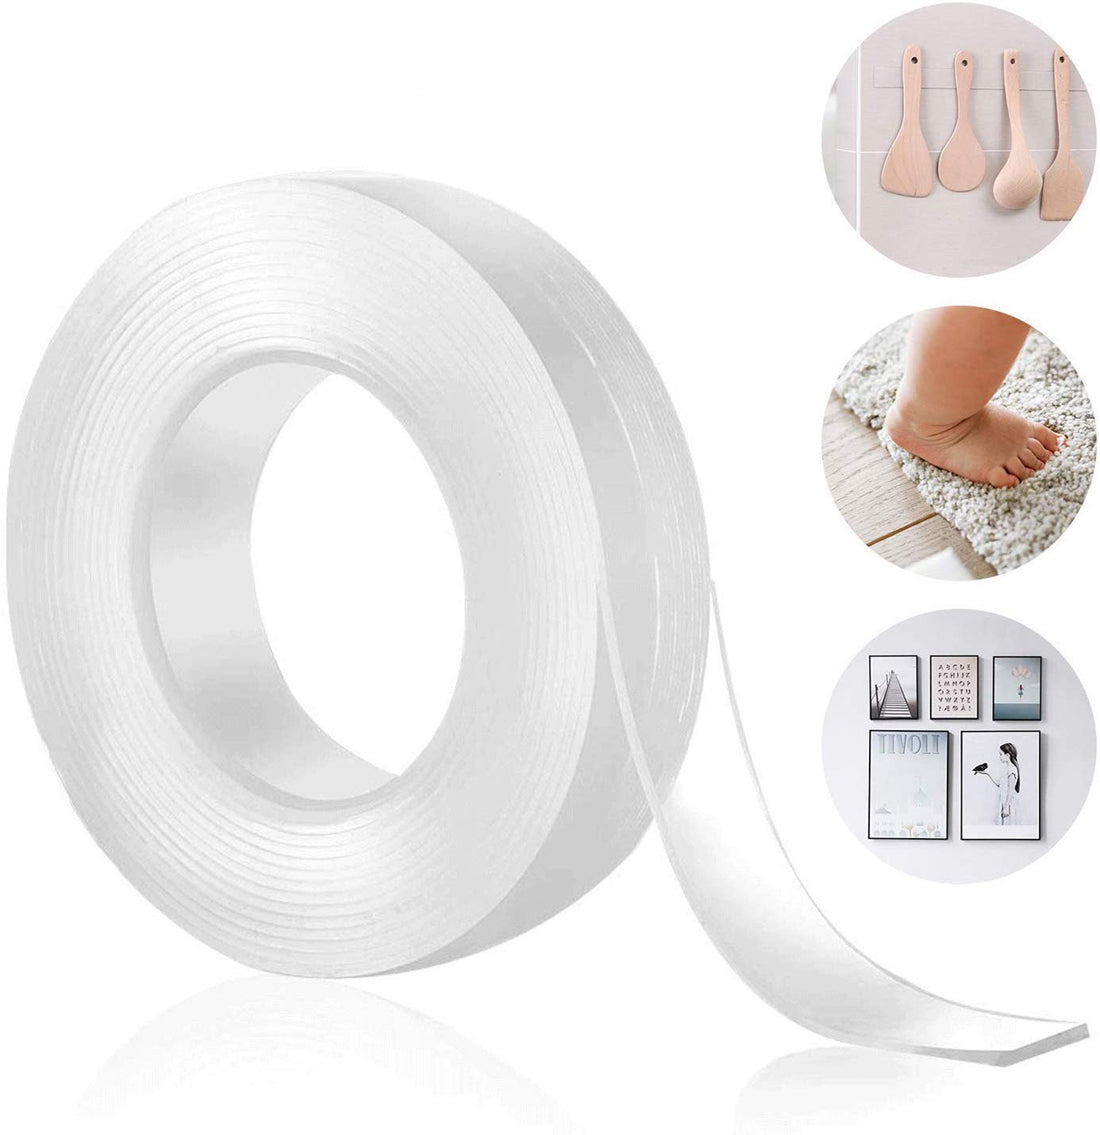 Double Sided Gel Tape 2M Movable Washable Reusable Sticky Anti-Slip Fixed Adhesive No-Trace Removable Glue Tape for Paste Photos Posters Key Fix Carpet Mat